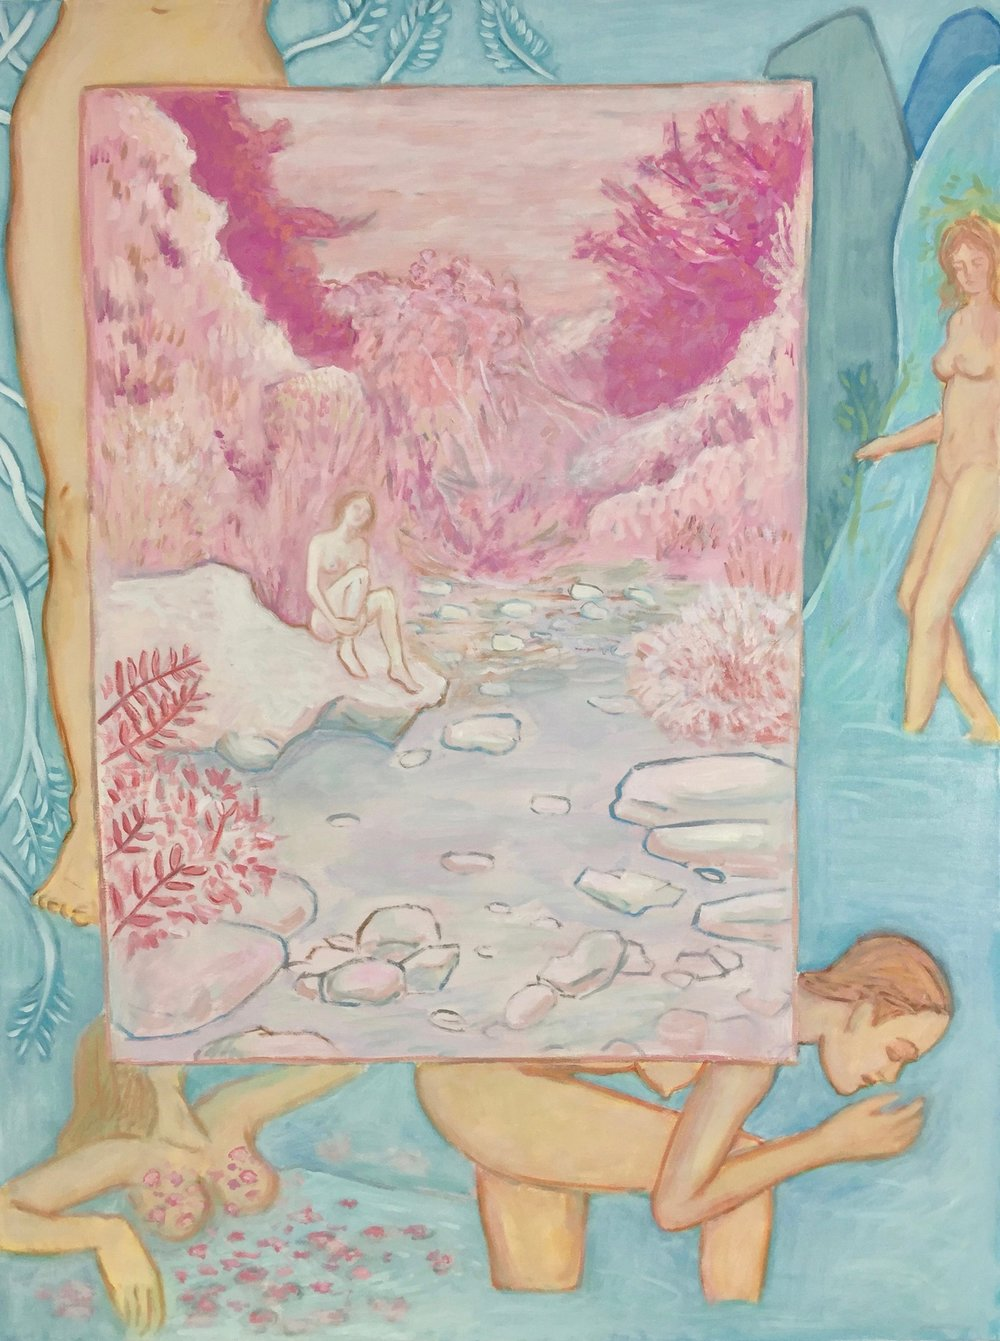 Aphrodite's Garden (The Pink Madness)